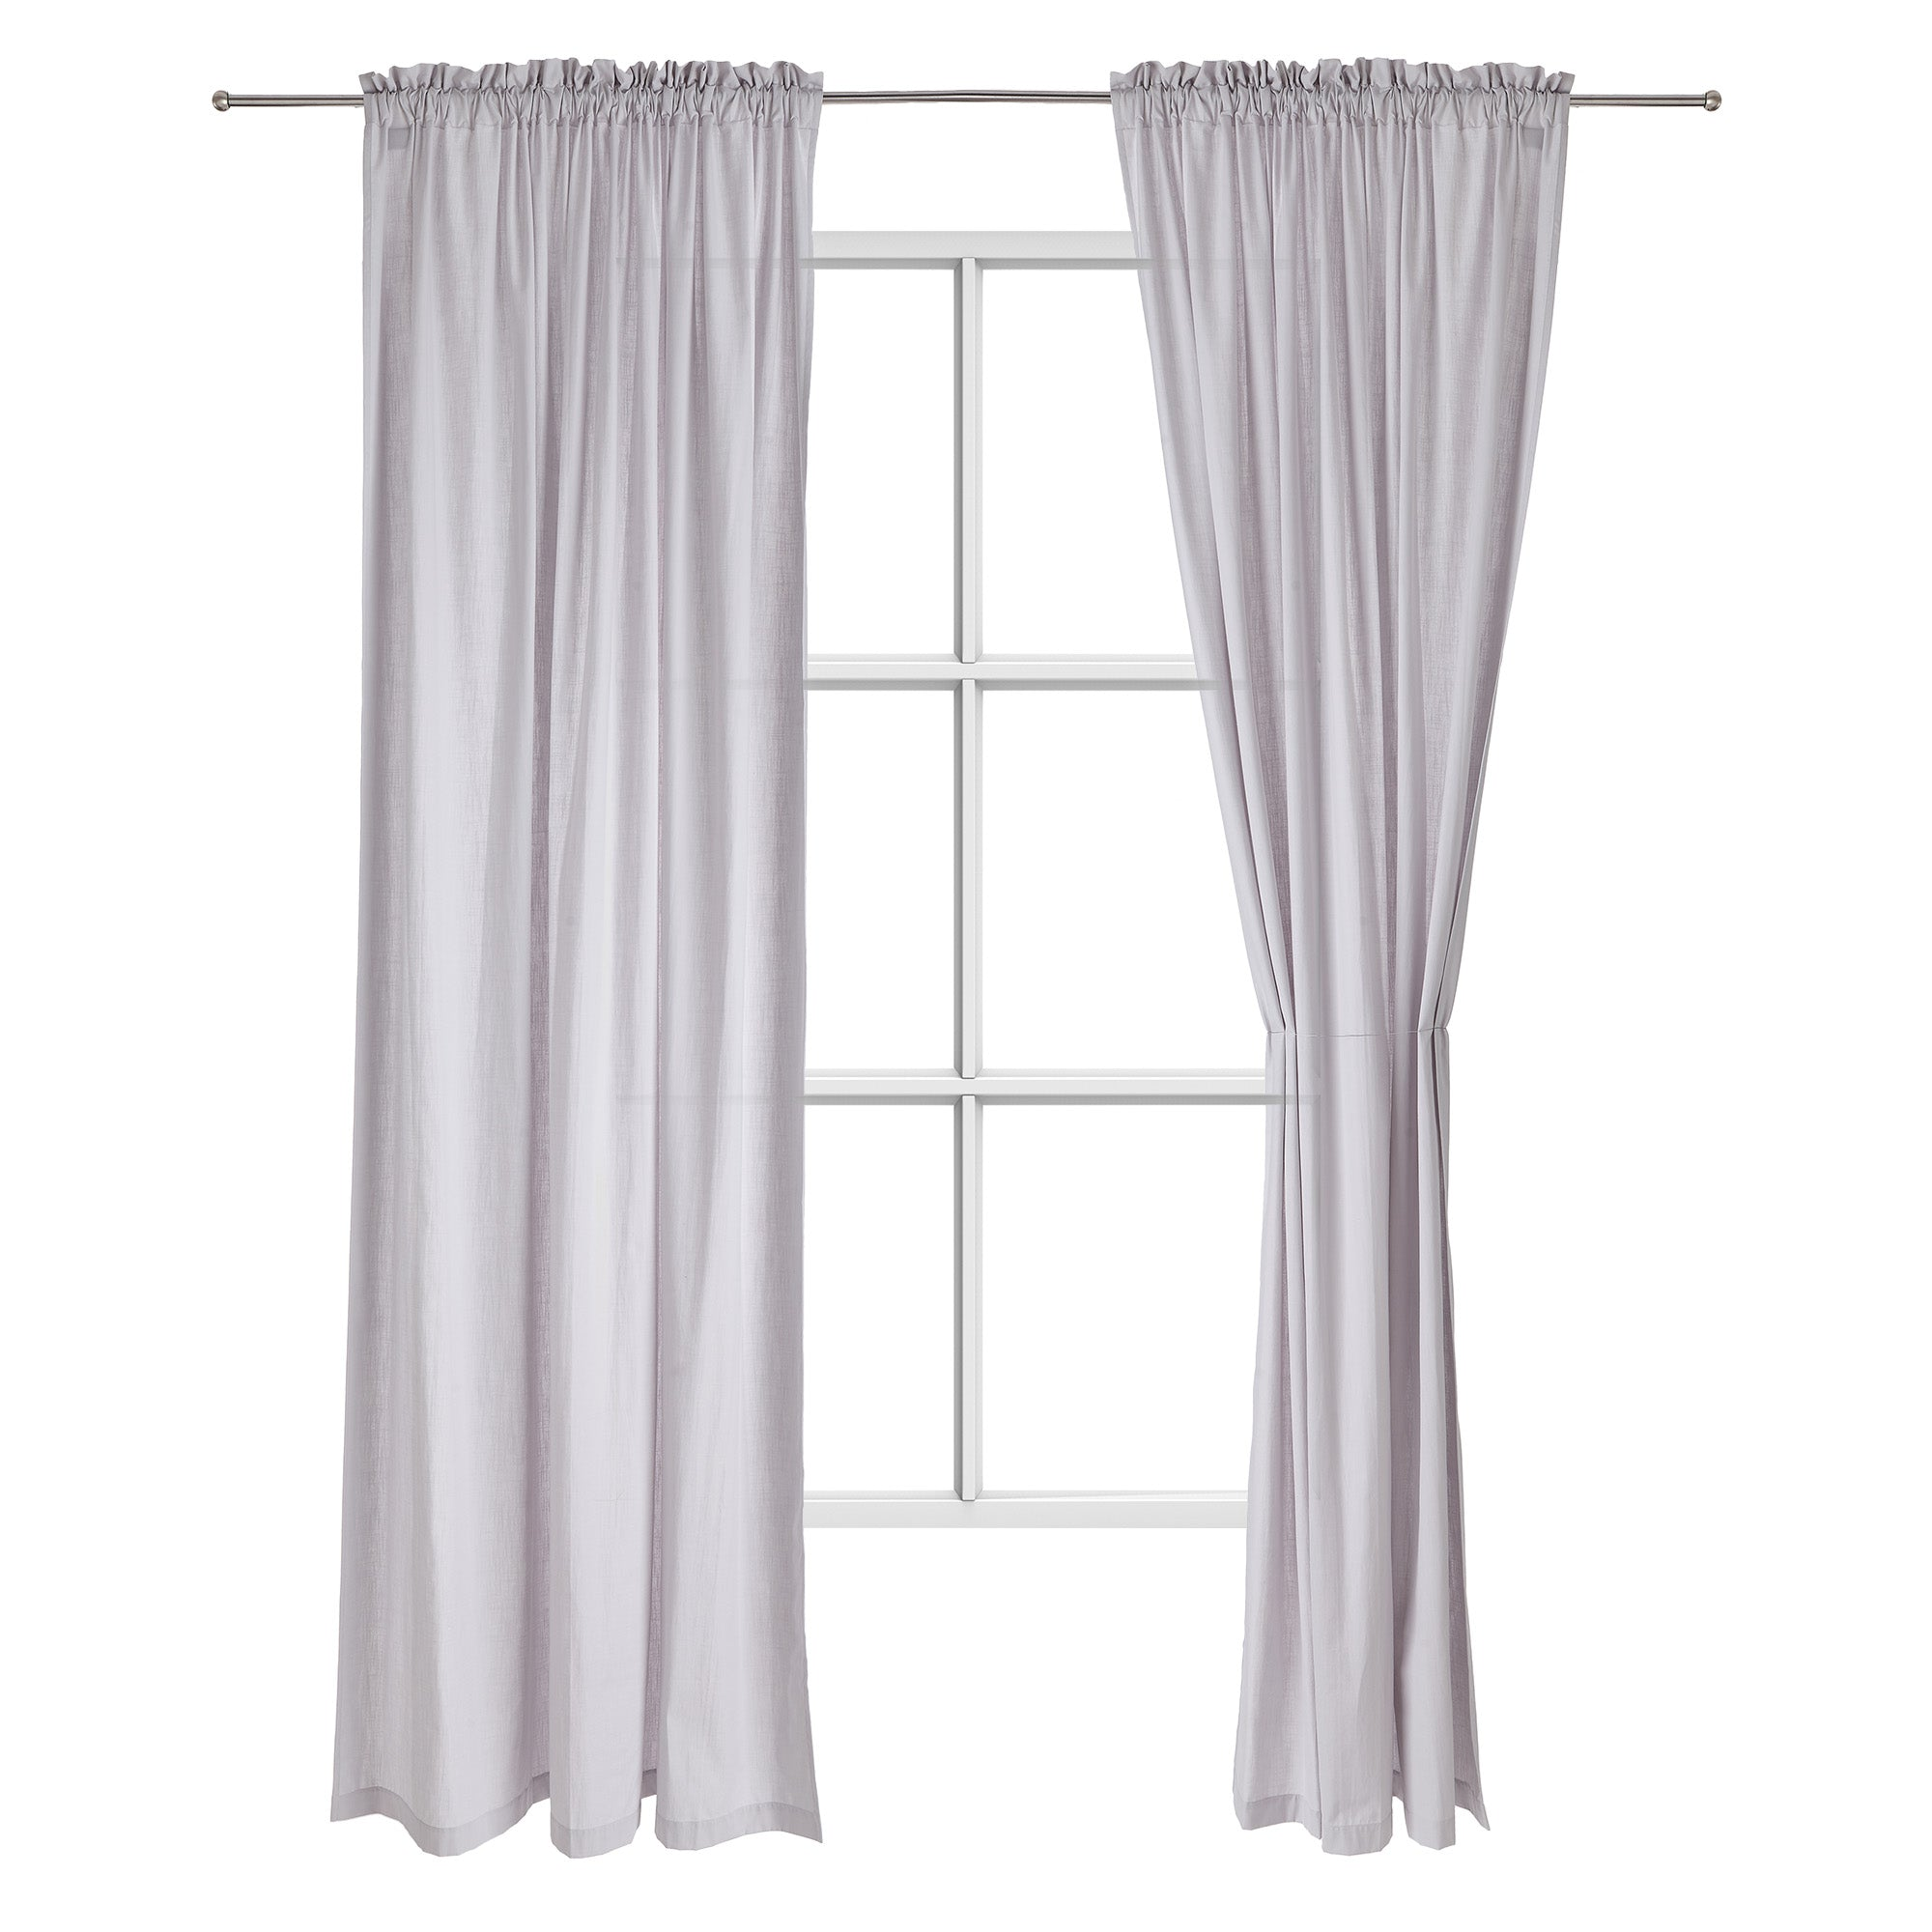 Alegre curtain [Silver grey]